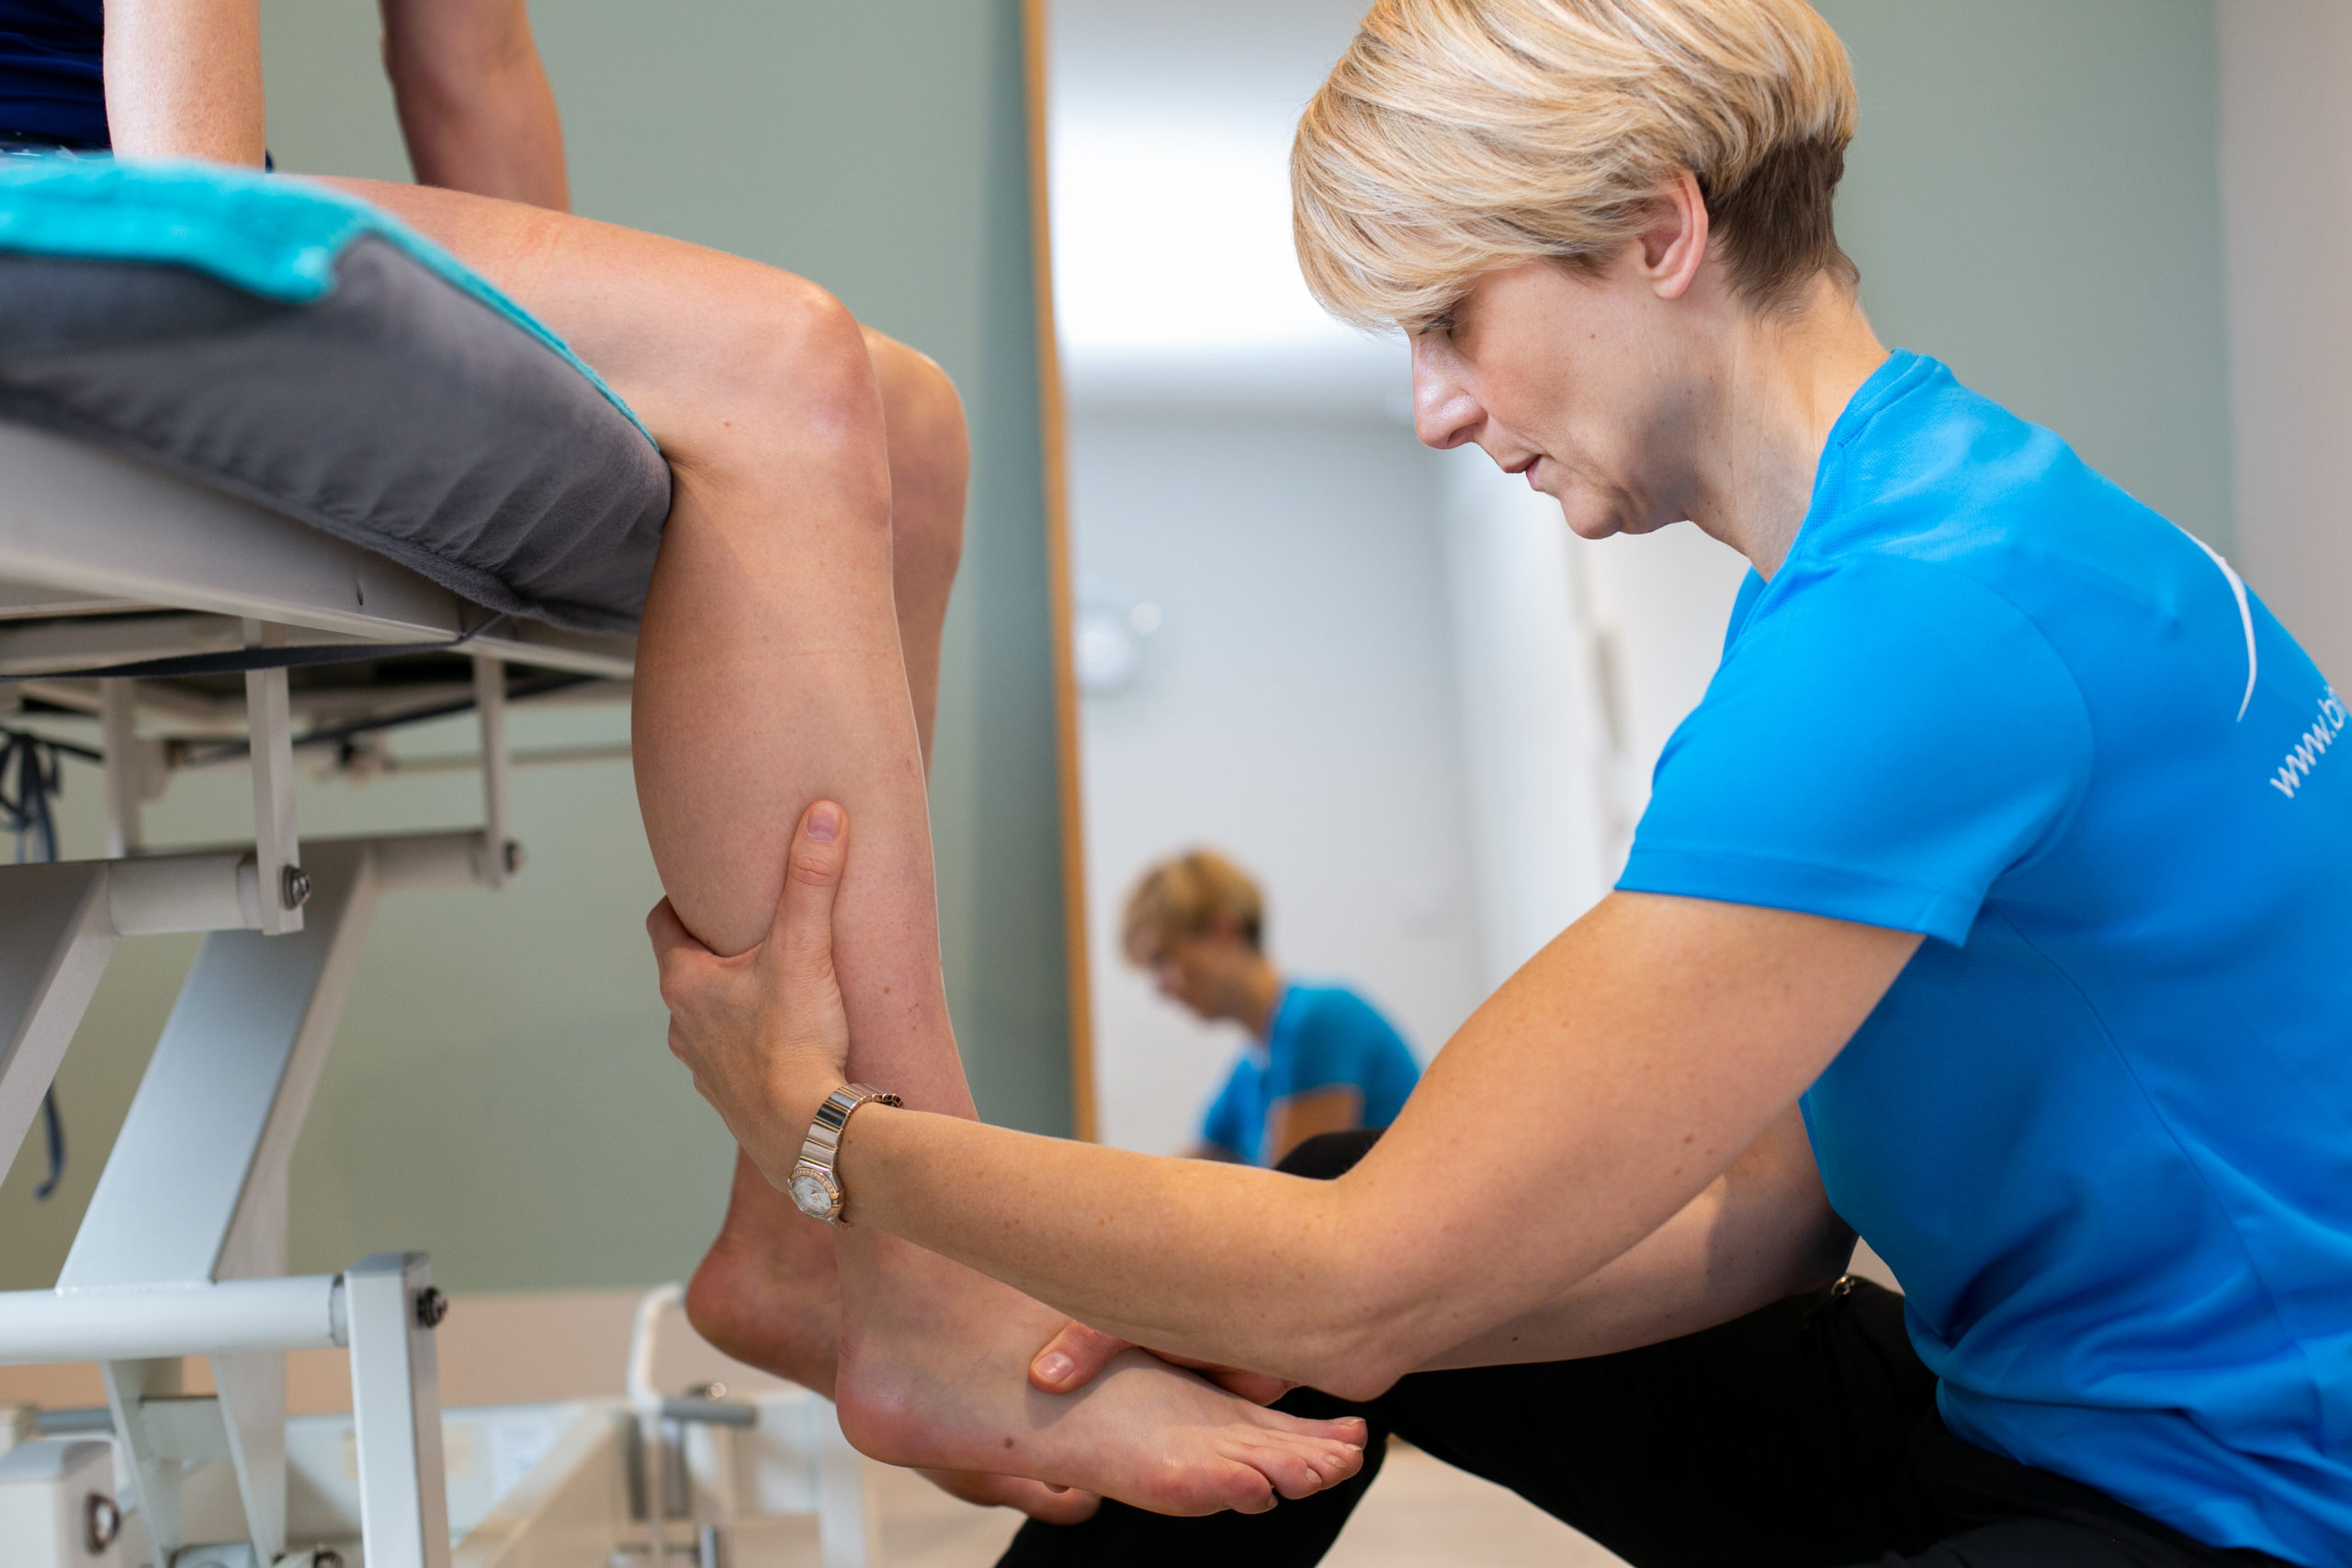 The Bingley Physiotherapy Practice Client information for In-Person Physiotherapy Consults